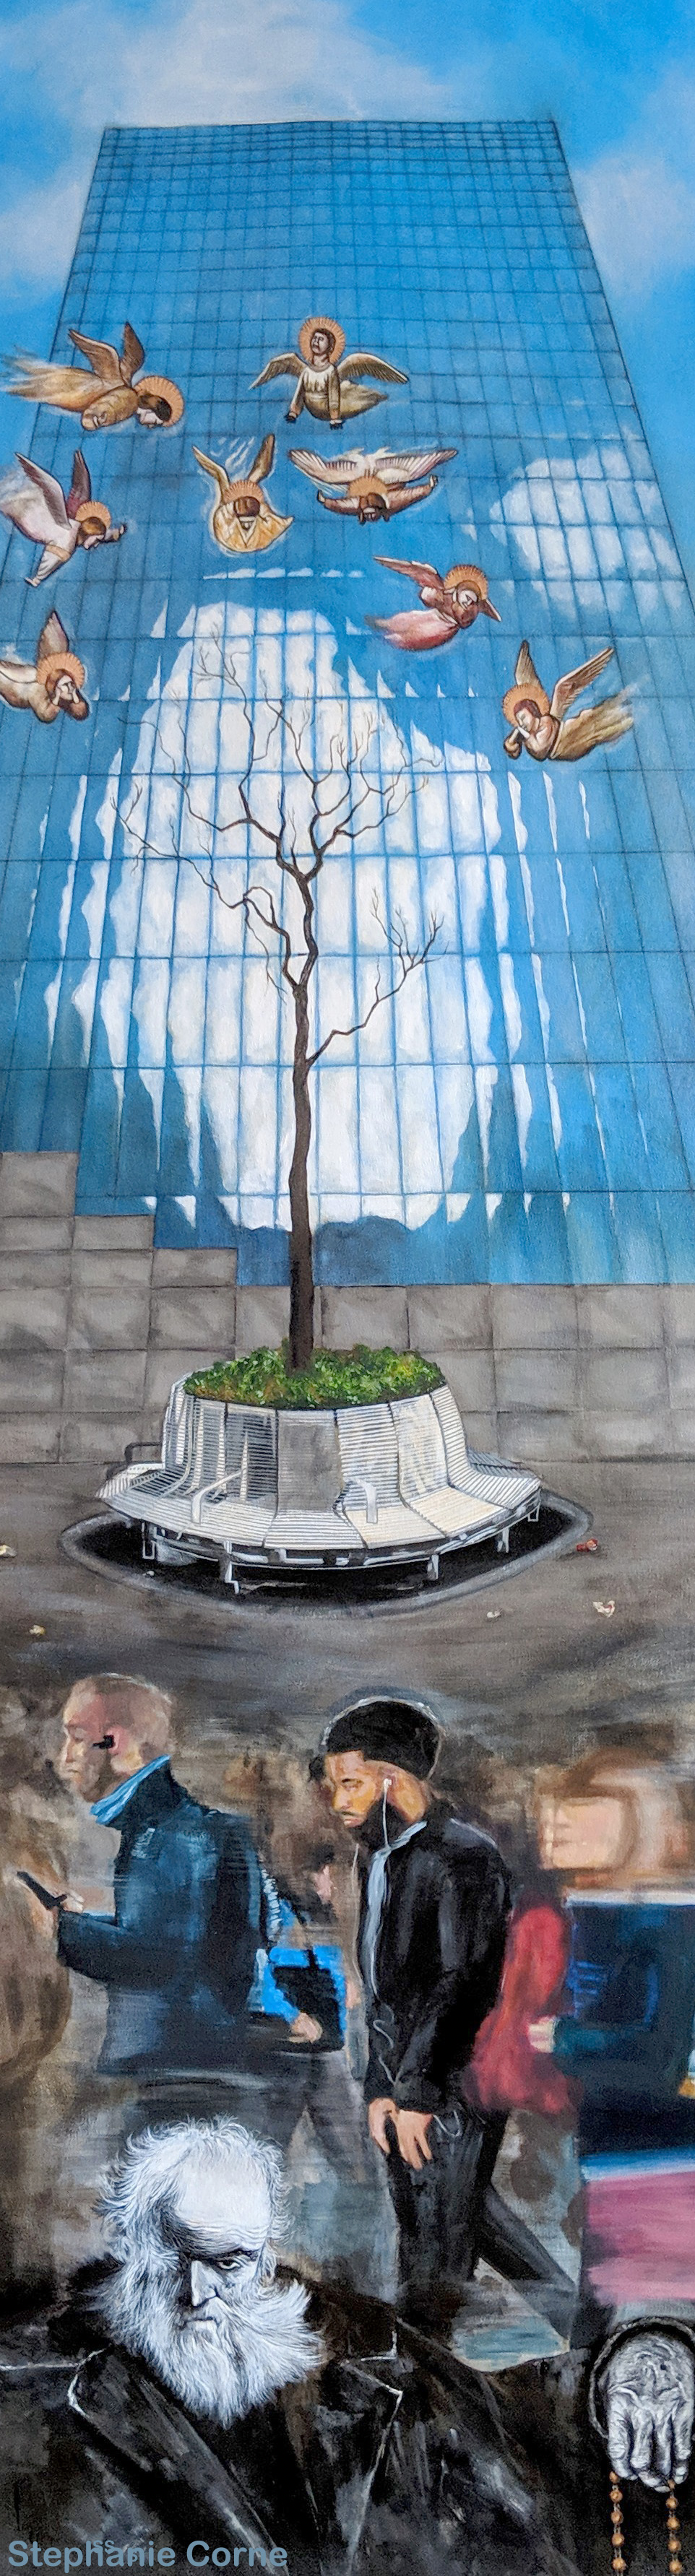 Signa Wall Street painting with no Borders Stephanie Corne.jpg